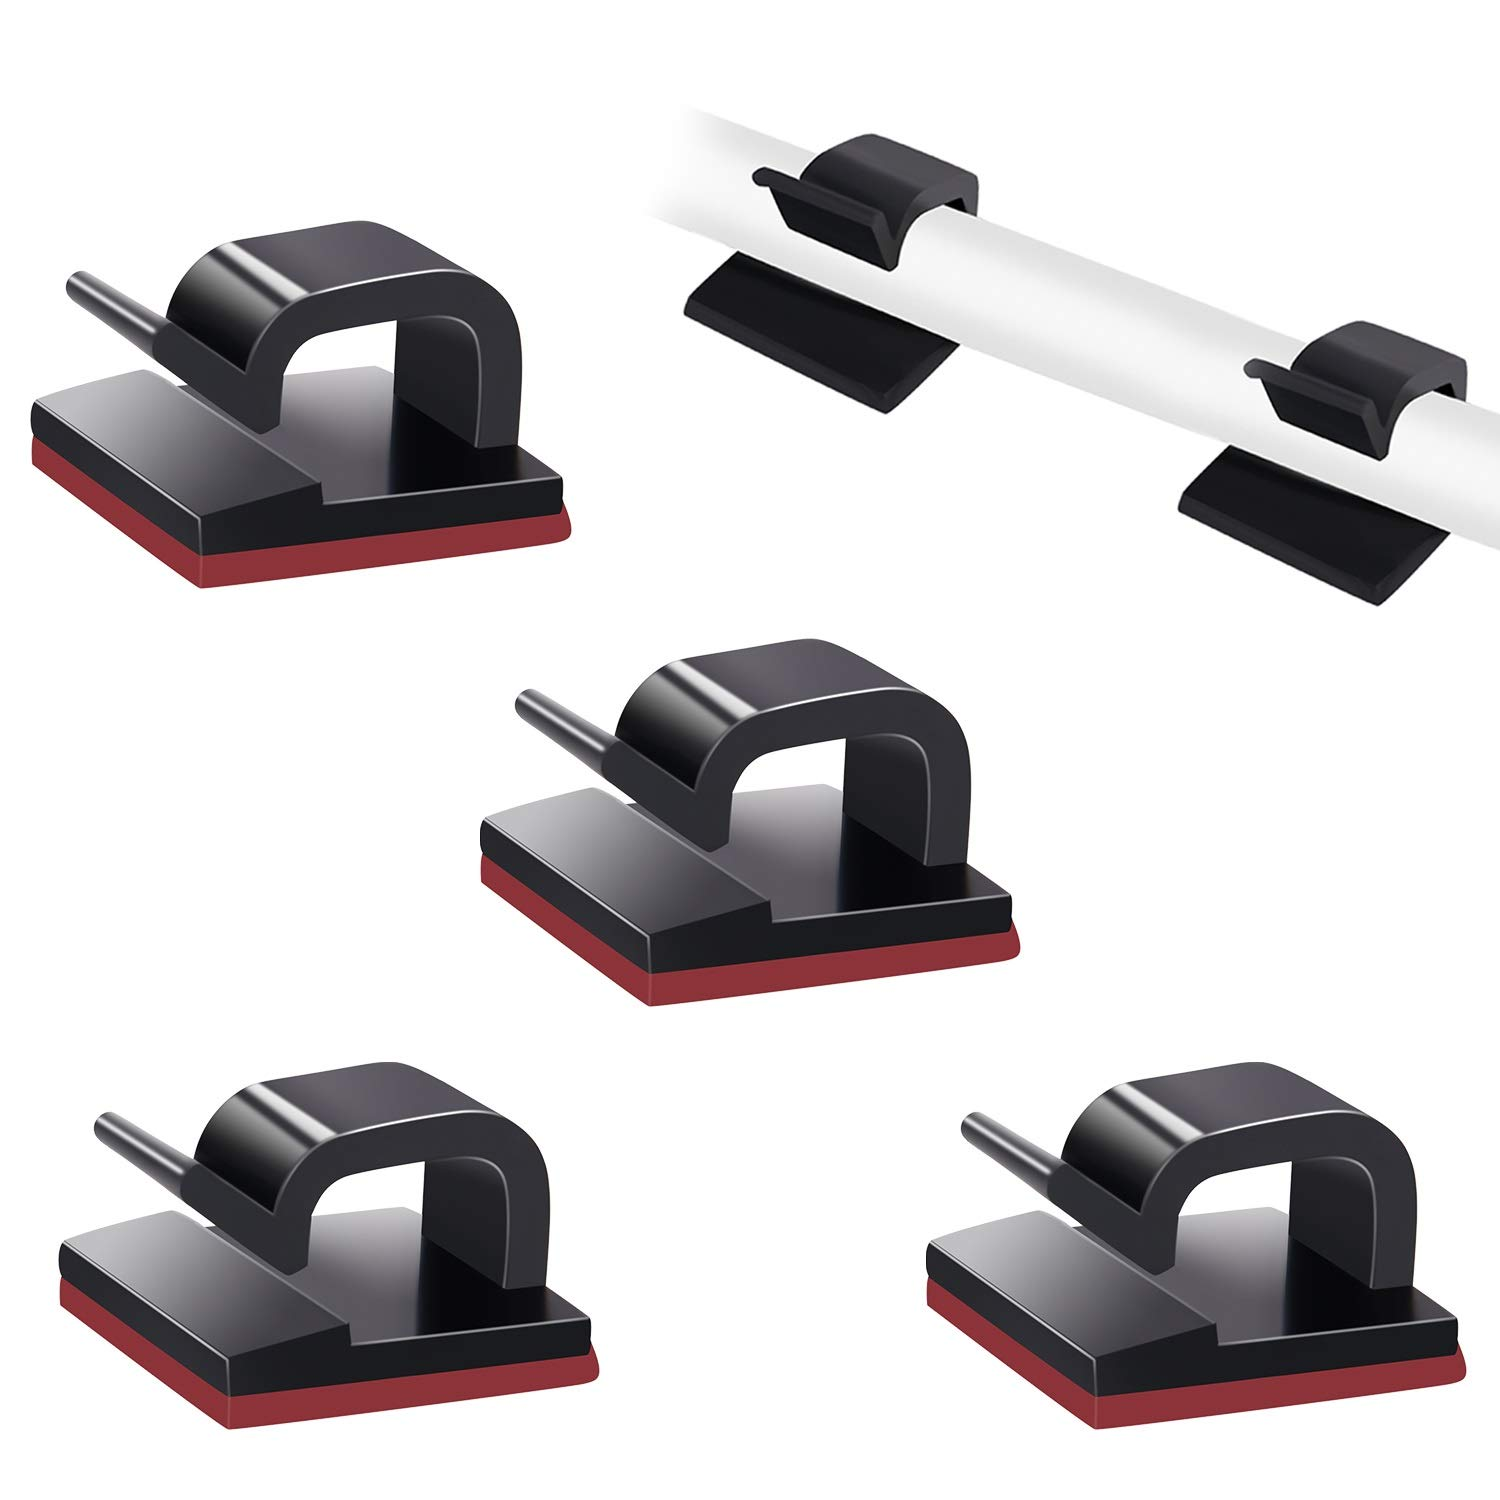 SOULWIT Cable Organizers Sticky Wire Clips Cord Holder for TV PC Laptop Ethernet Cable Desktop Home Office 100 Pcs Self Adhesive Cable Management Clips